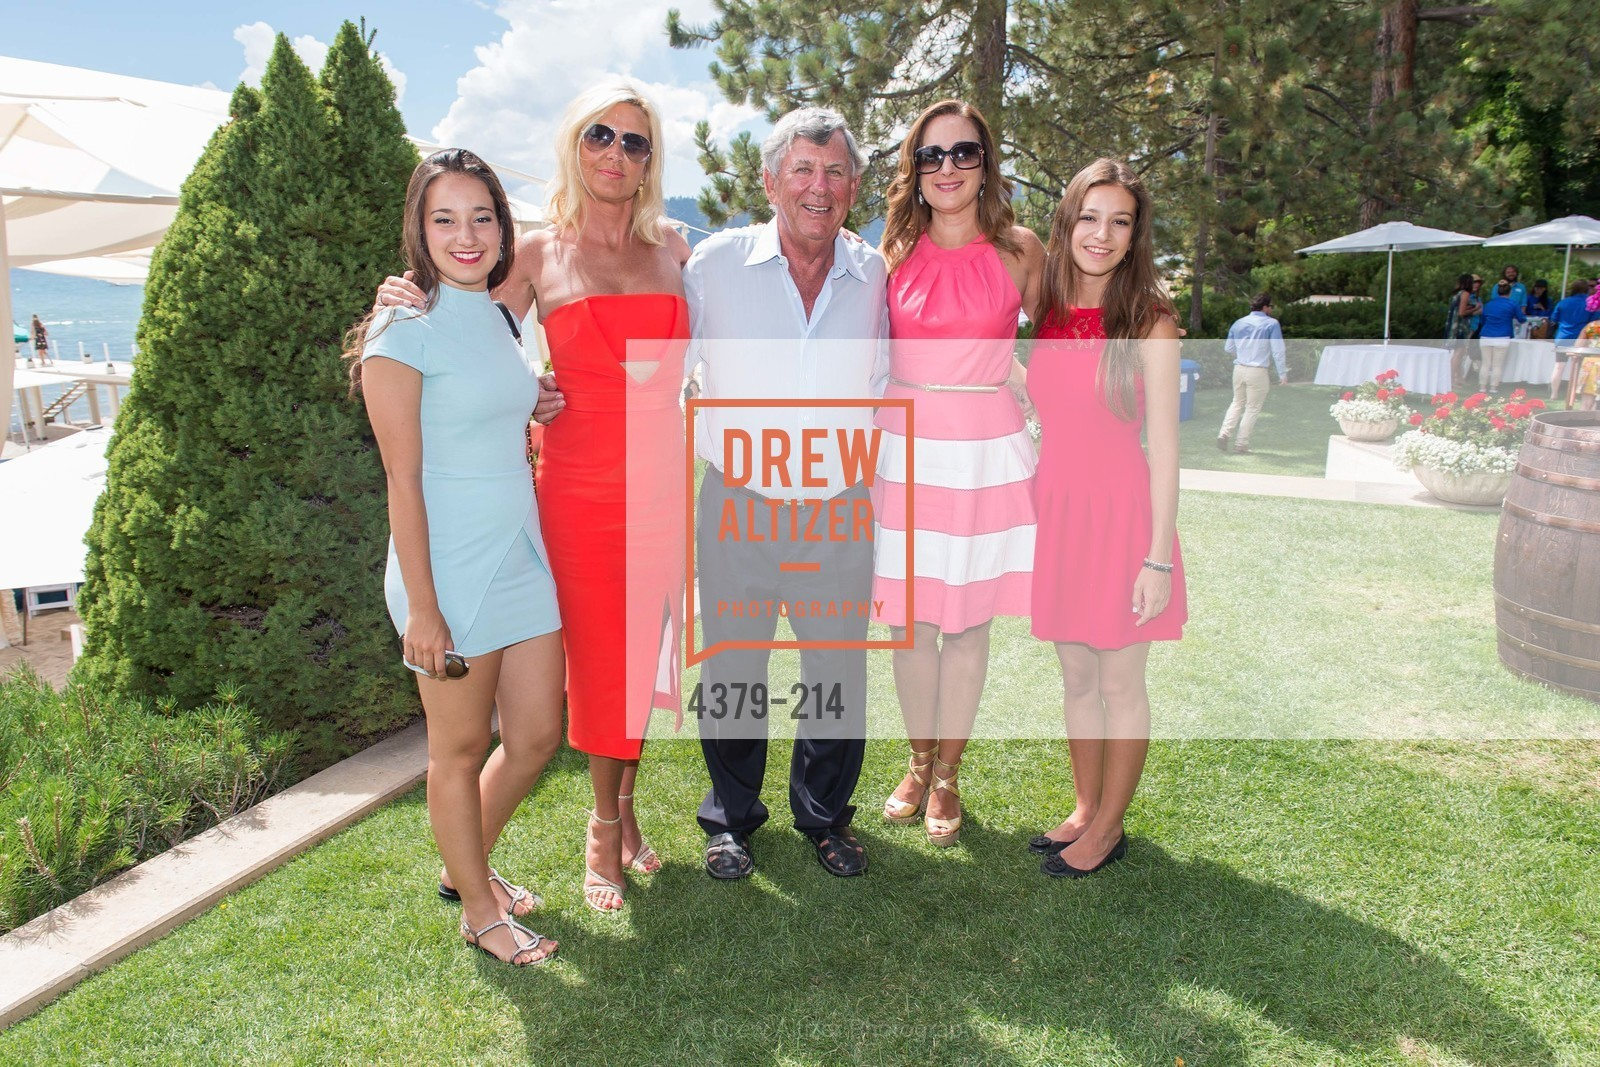 Veronica Gonzalez, Angela Karp, Kern Schumacher, Veronica Salinas, Raquel Gonzalez, Saks Fifth Avenue and The League to Save Lake Tahoe Present Fashion on the Lake, Private Residence, August 1st, 2015,Drew Altizer, Drew Altizer Photography, full-service agency, private events, San Francisco photographer, photographer california